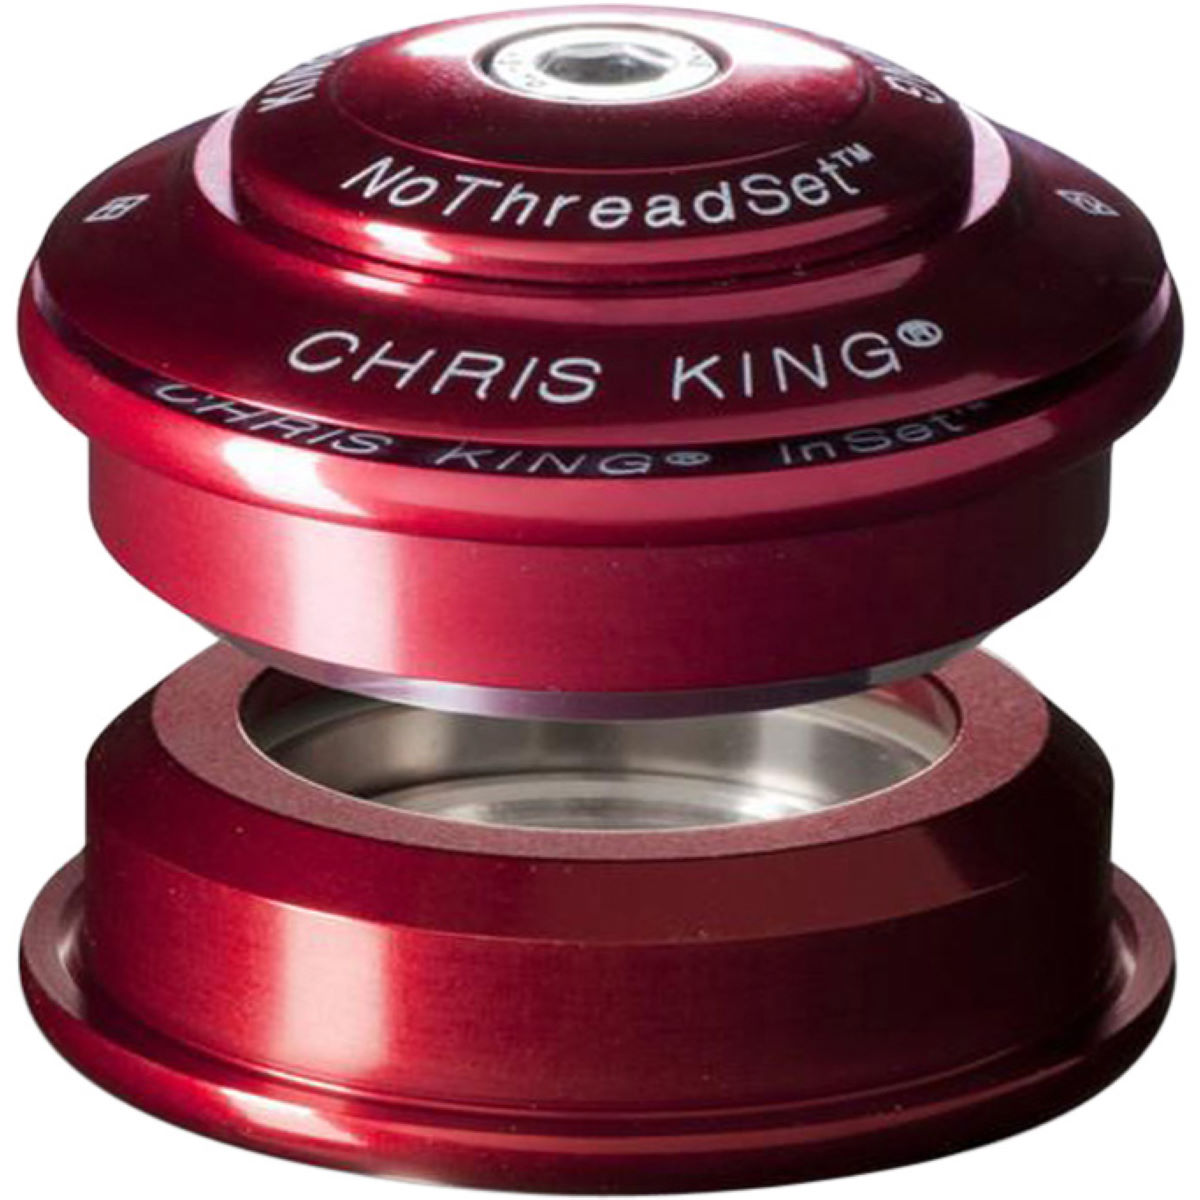 Jeu de direction Chris King 1 1/8 pouce Inset 1 - 1 1/8'' Rouge